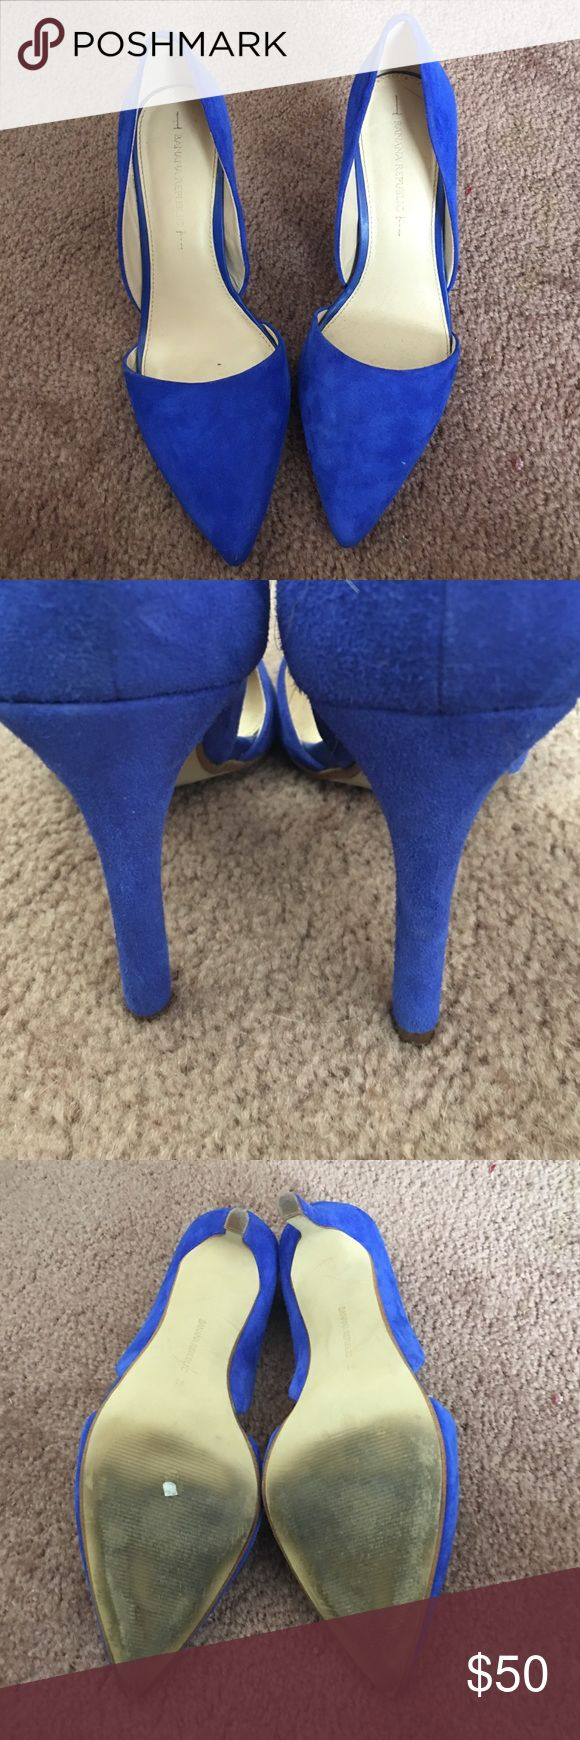 """Blue suede pumps Gently worn suede d'orsay pumps in excellent condition. Fun royal blue color to punch up your outfit a bit. No visible signs of wear. Appropriately 4"""" heel Banana Republic Shoes Heels"""